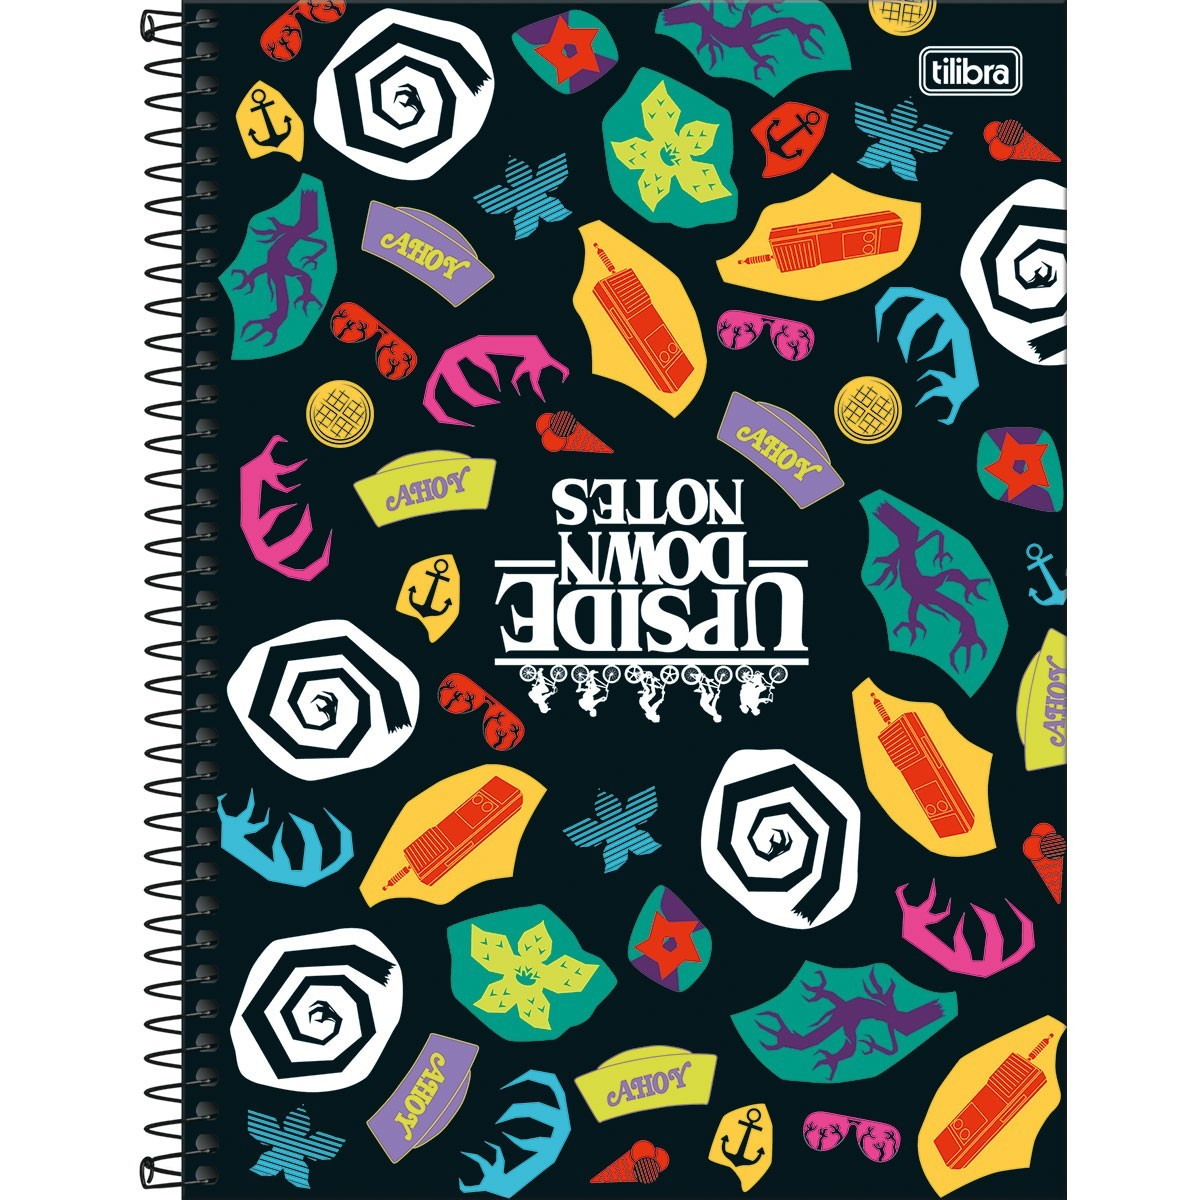 Caderno Espiral Capa Dura Universitário 10 Matérias Stranger Things Upside Down Side 160 Folhas